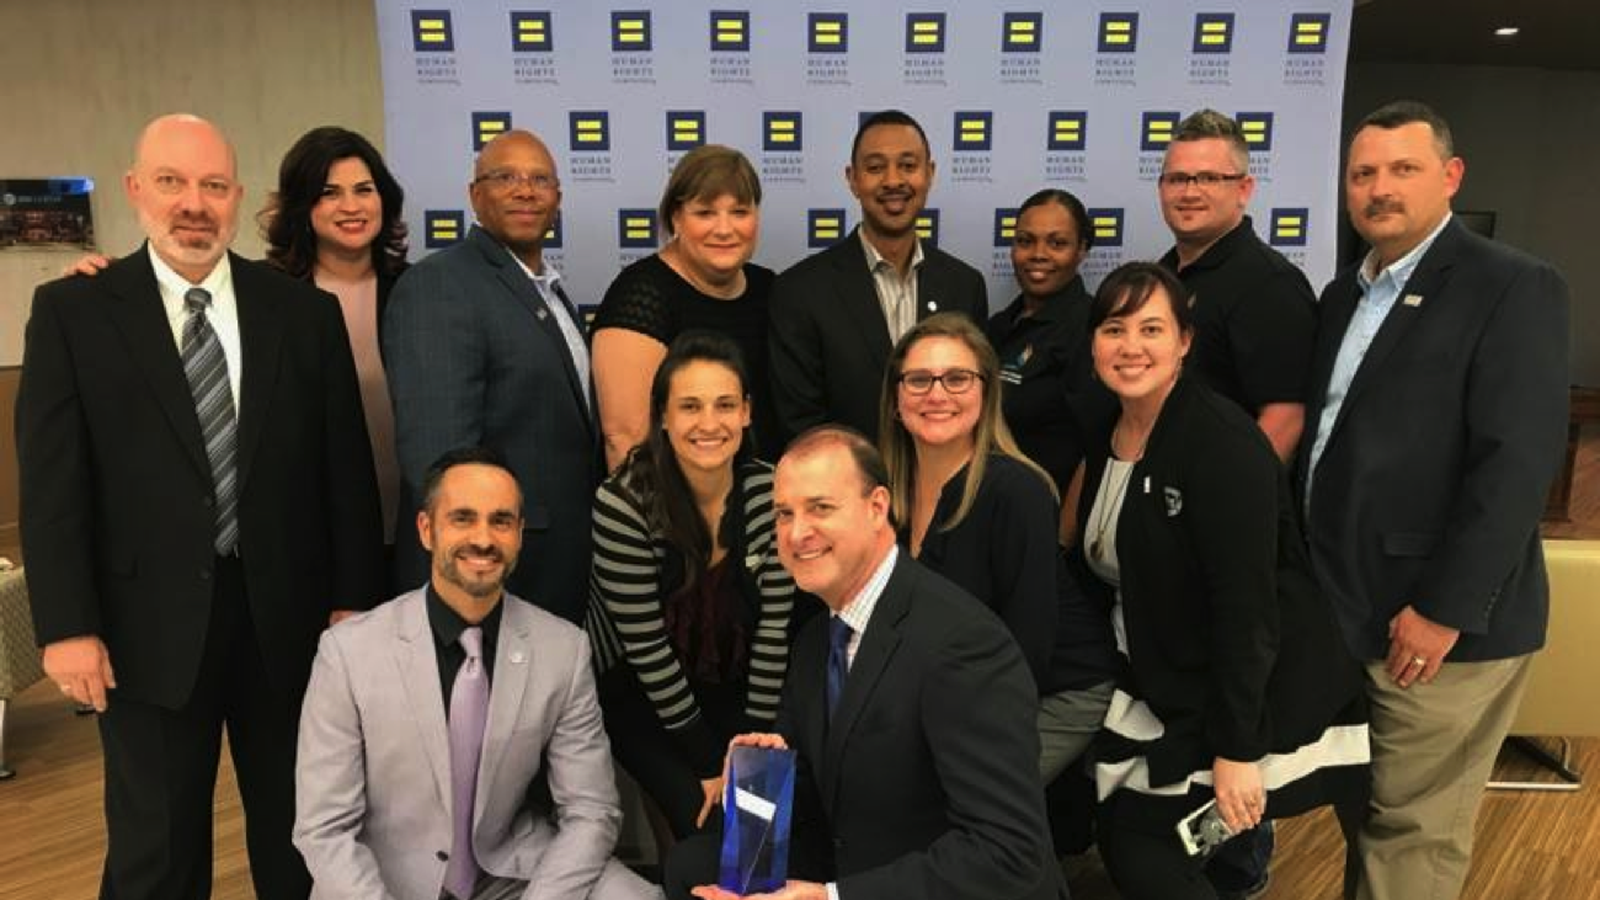 HRC Celebrates Leaders of Corporate Equality in Texas